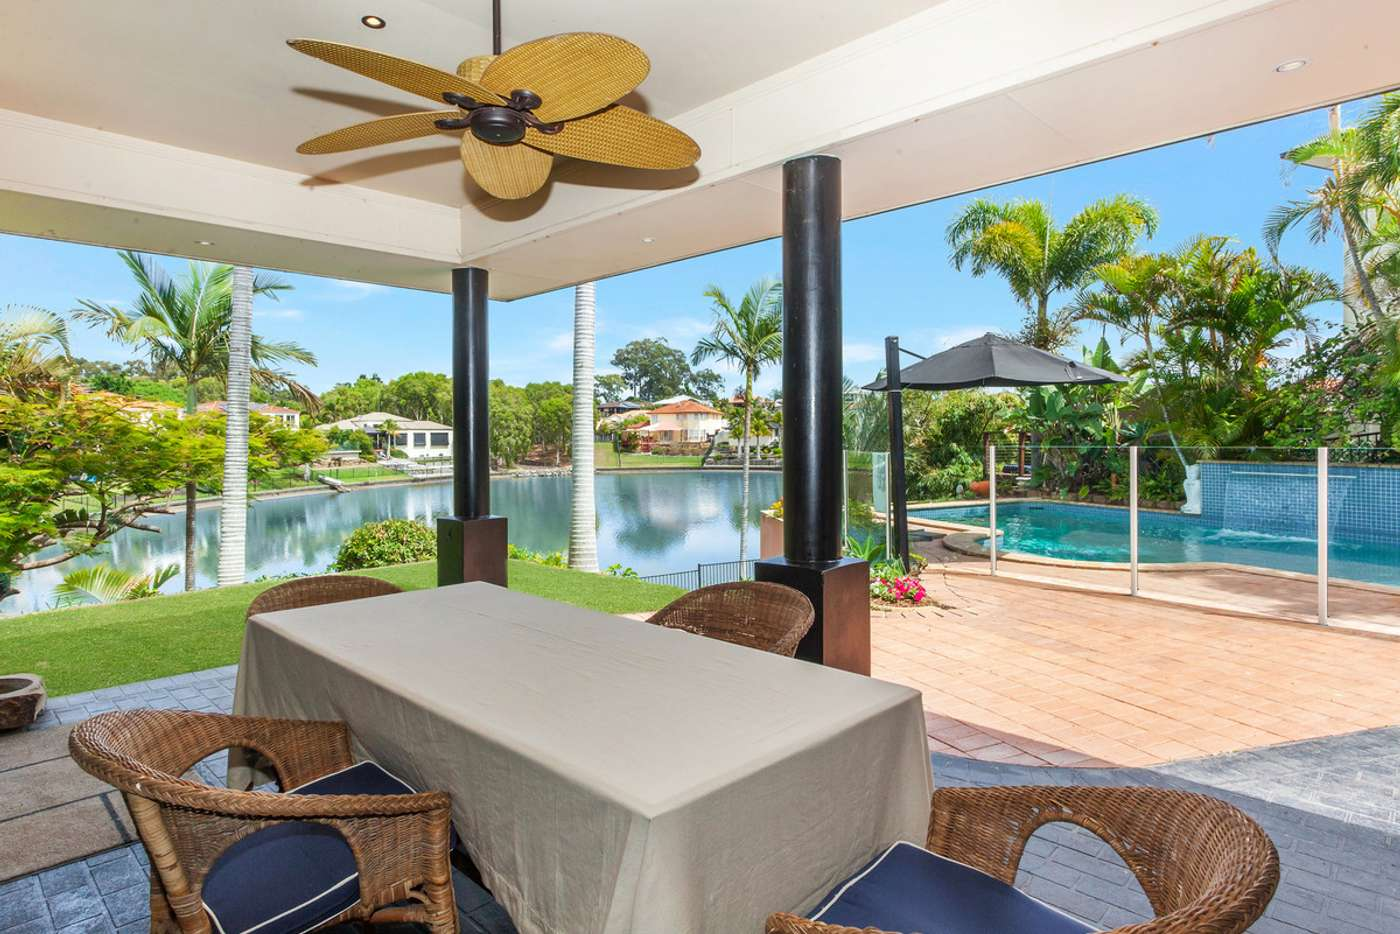 Main view of Homely house listing, 6 Crozet Crt, Burleigh Waters QLD 4220